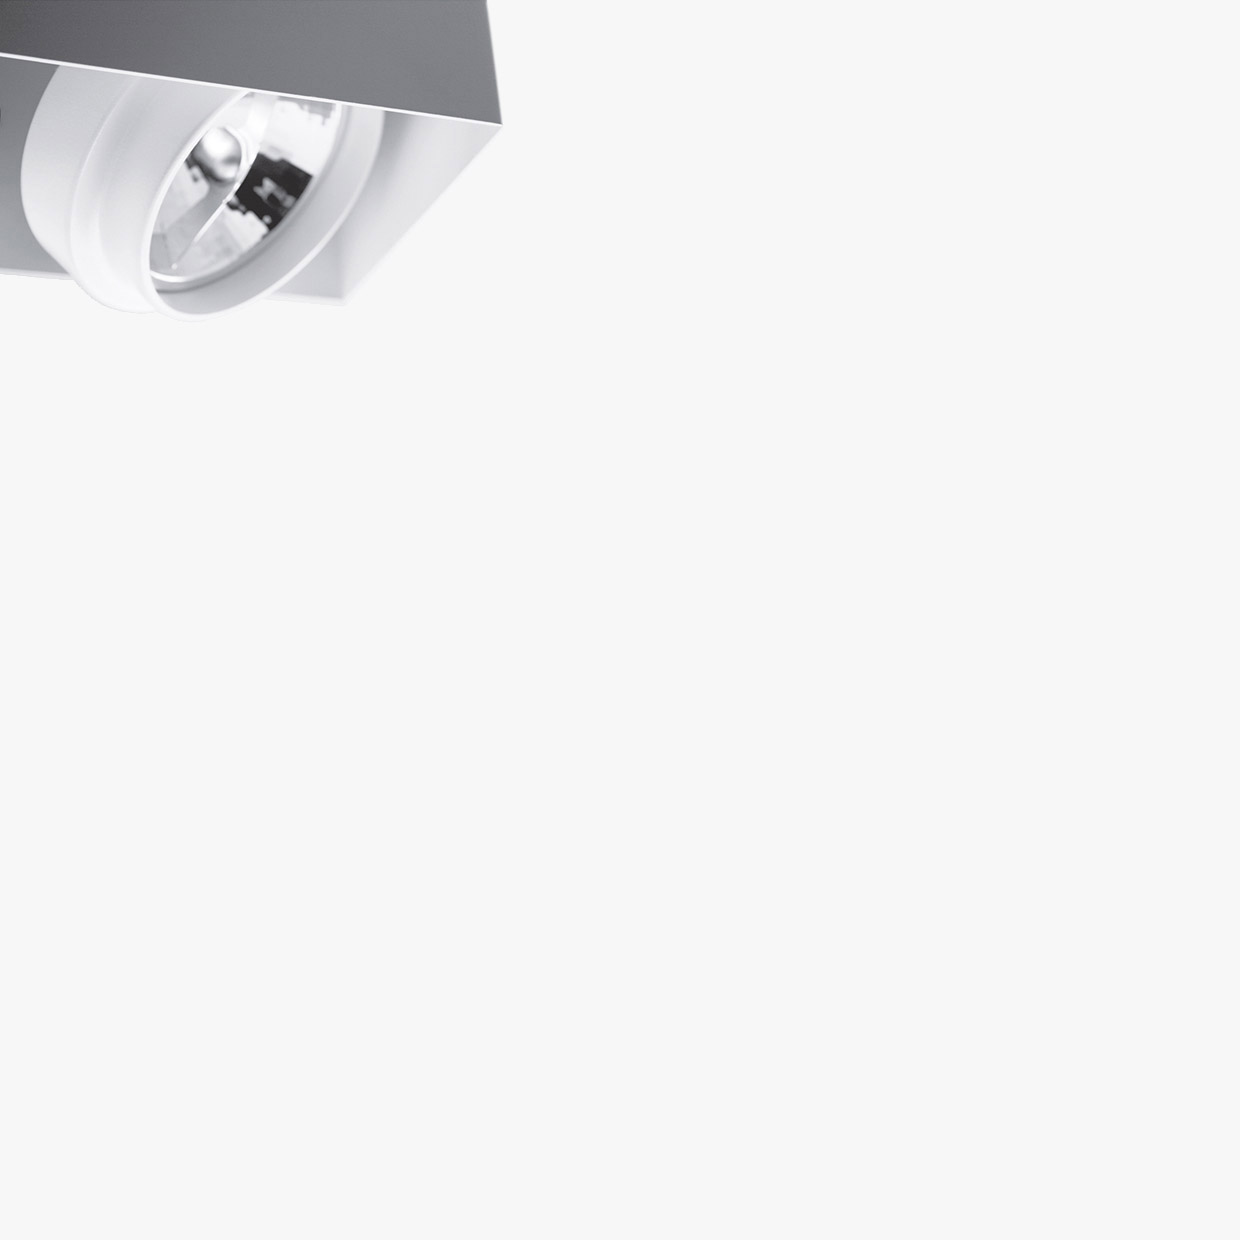 PUNTO 2 PL - Ceiling lamp with adjustable spotlight